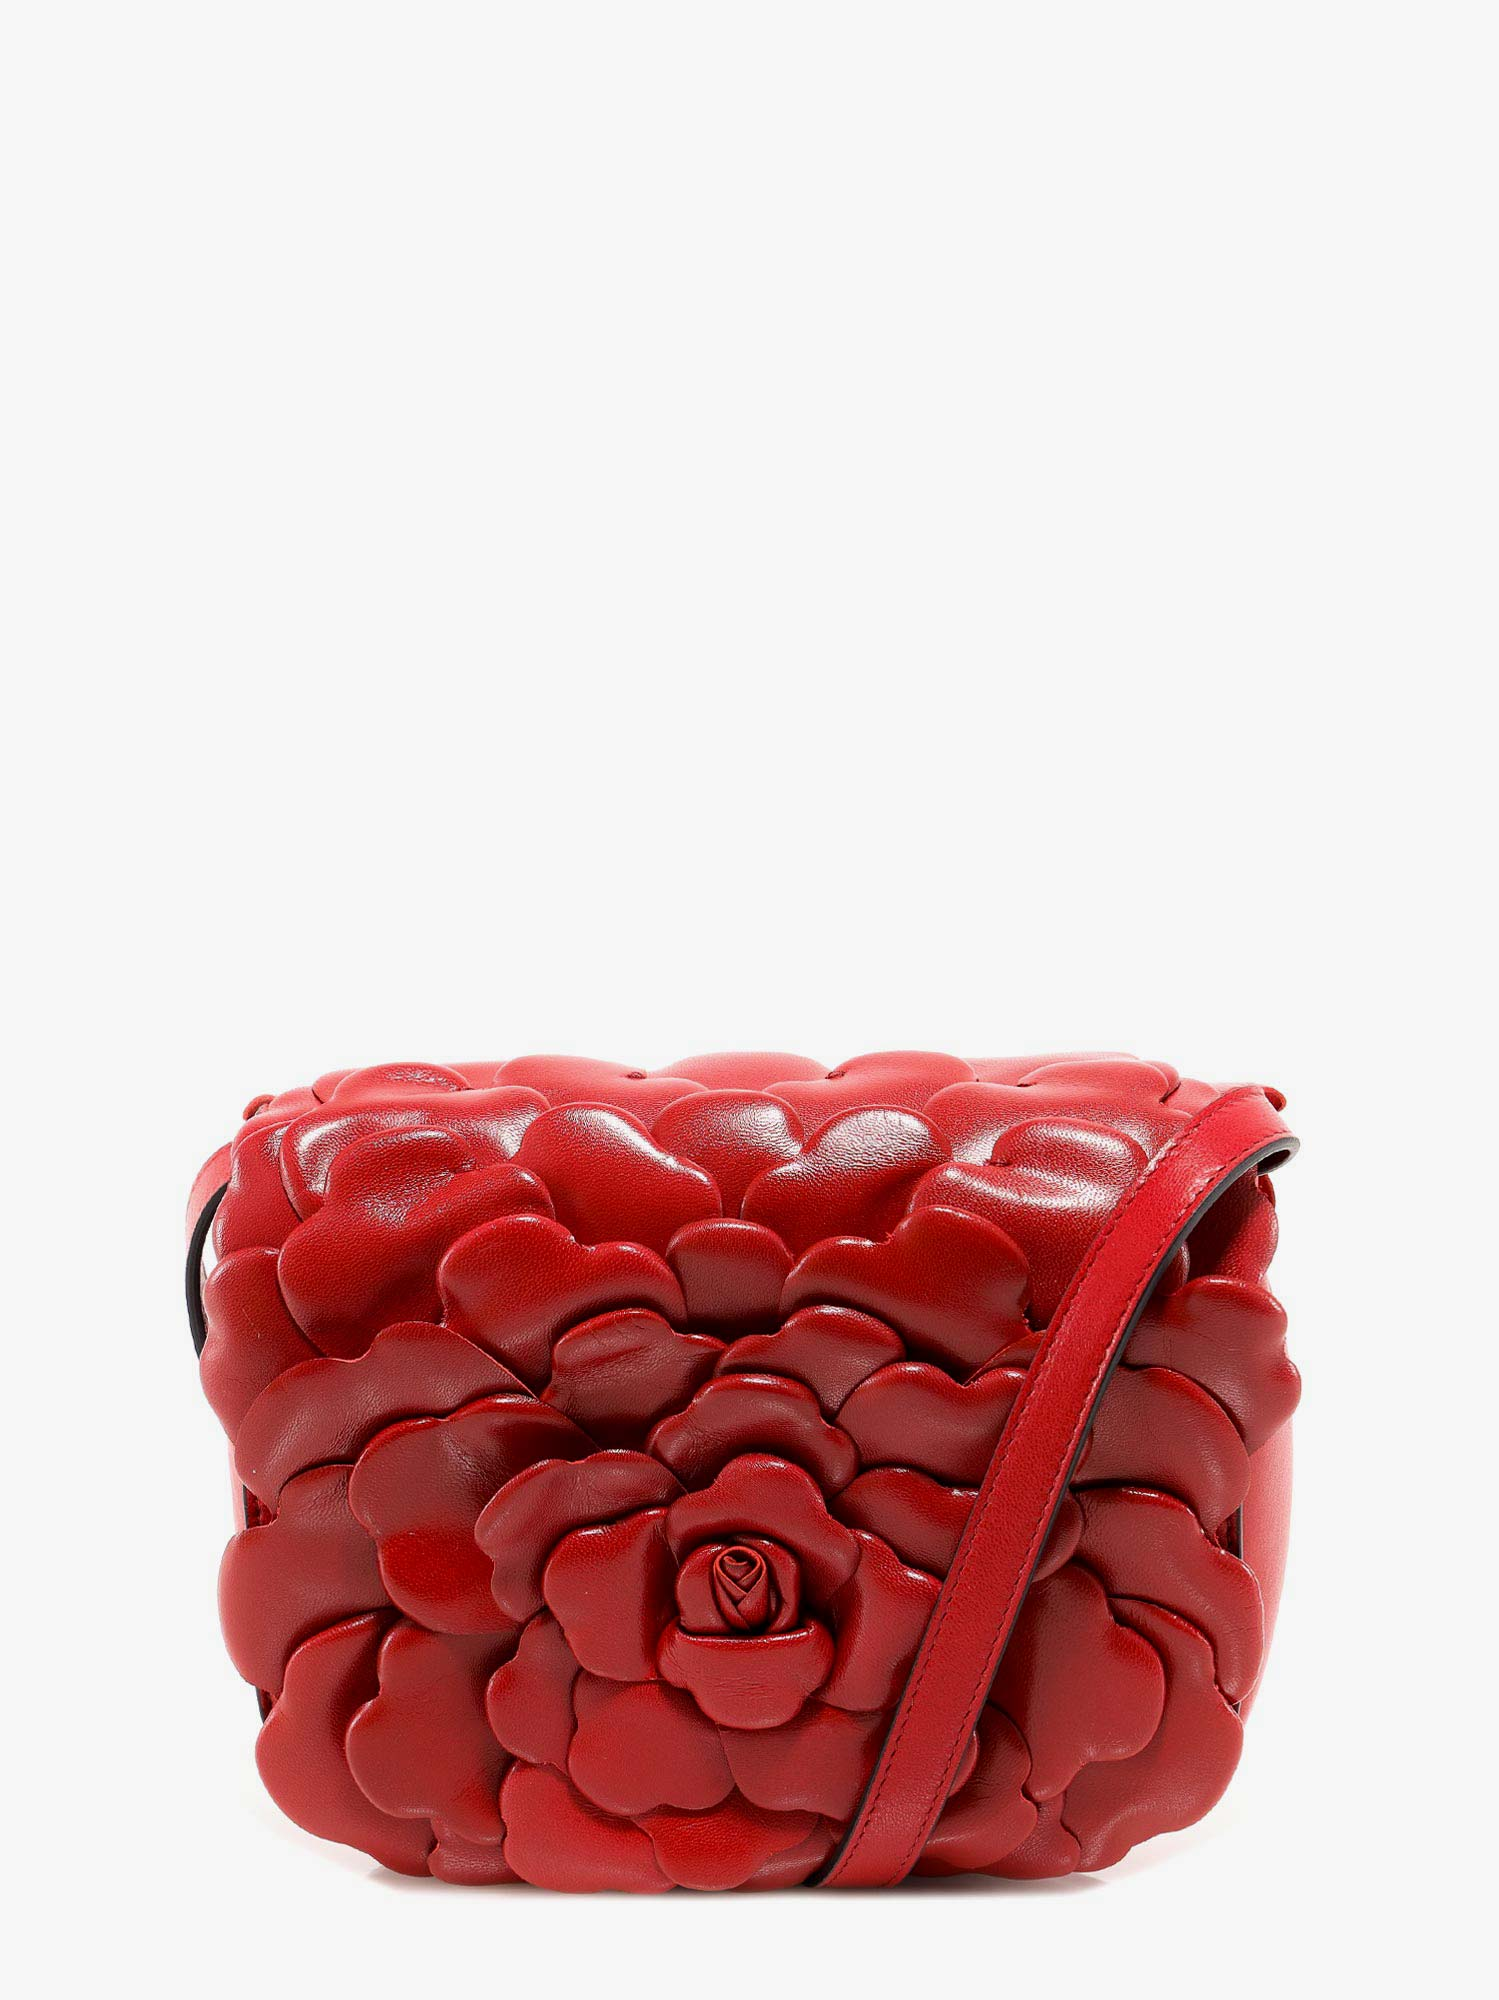 ATELIER BAG 03 ROSE EDITION